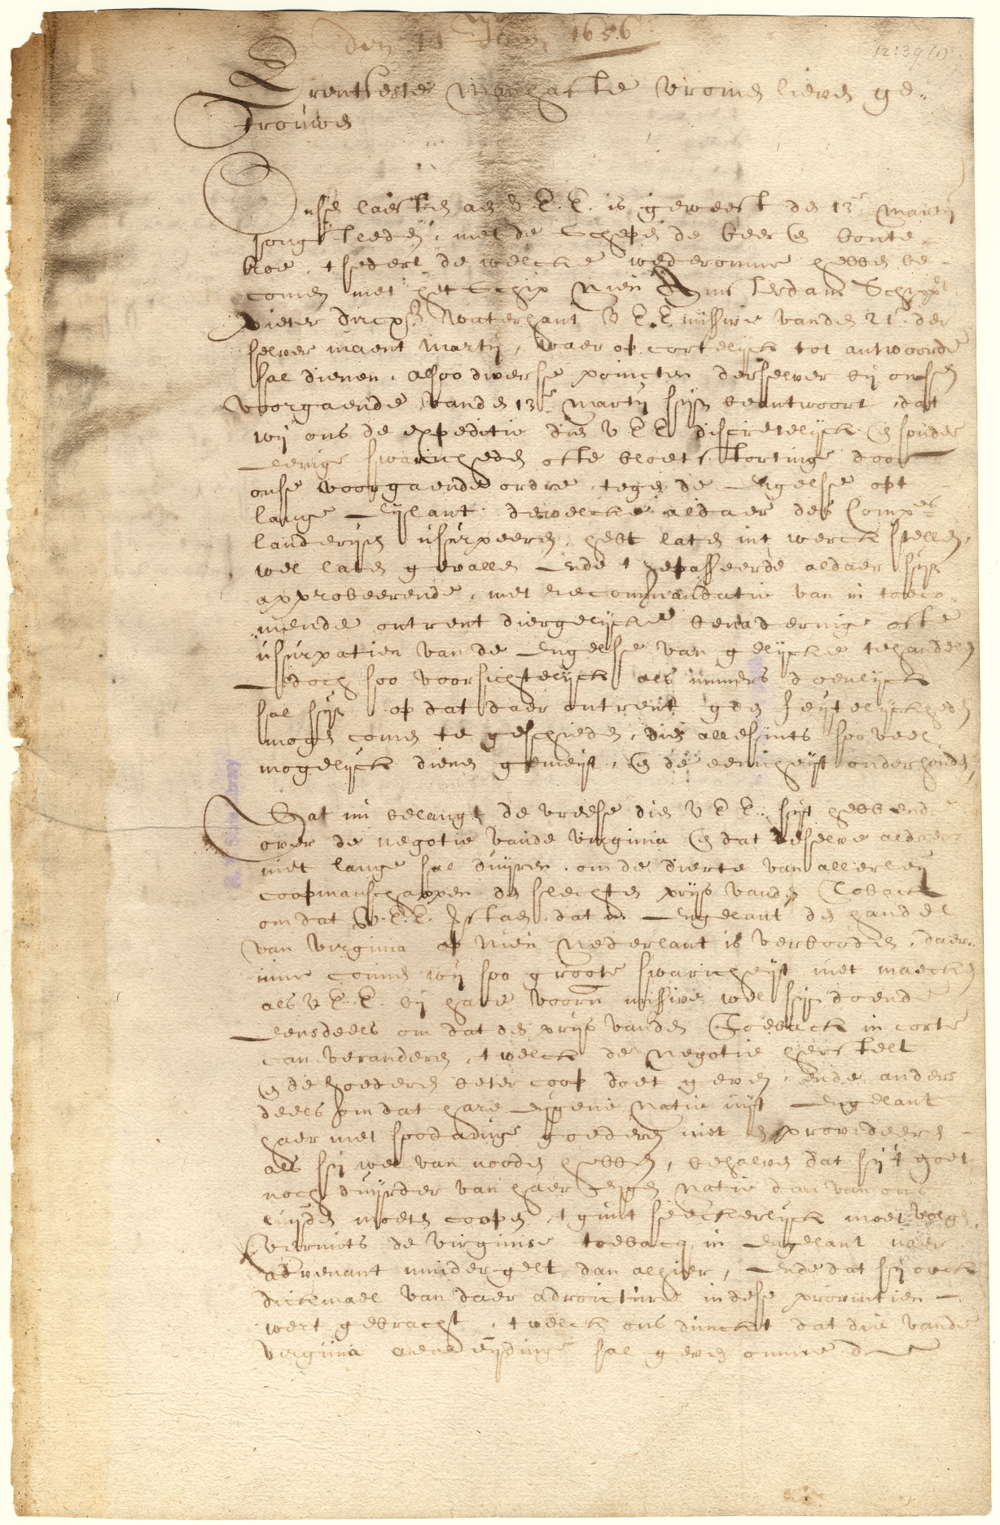 Letter from the Directors to Stuyvesant - The letter condemning Stuyvesant for not obeying orders to permit Jews to trade and buy real estate but granted restrictions on Portuguese Jews to be employed in the trades.